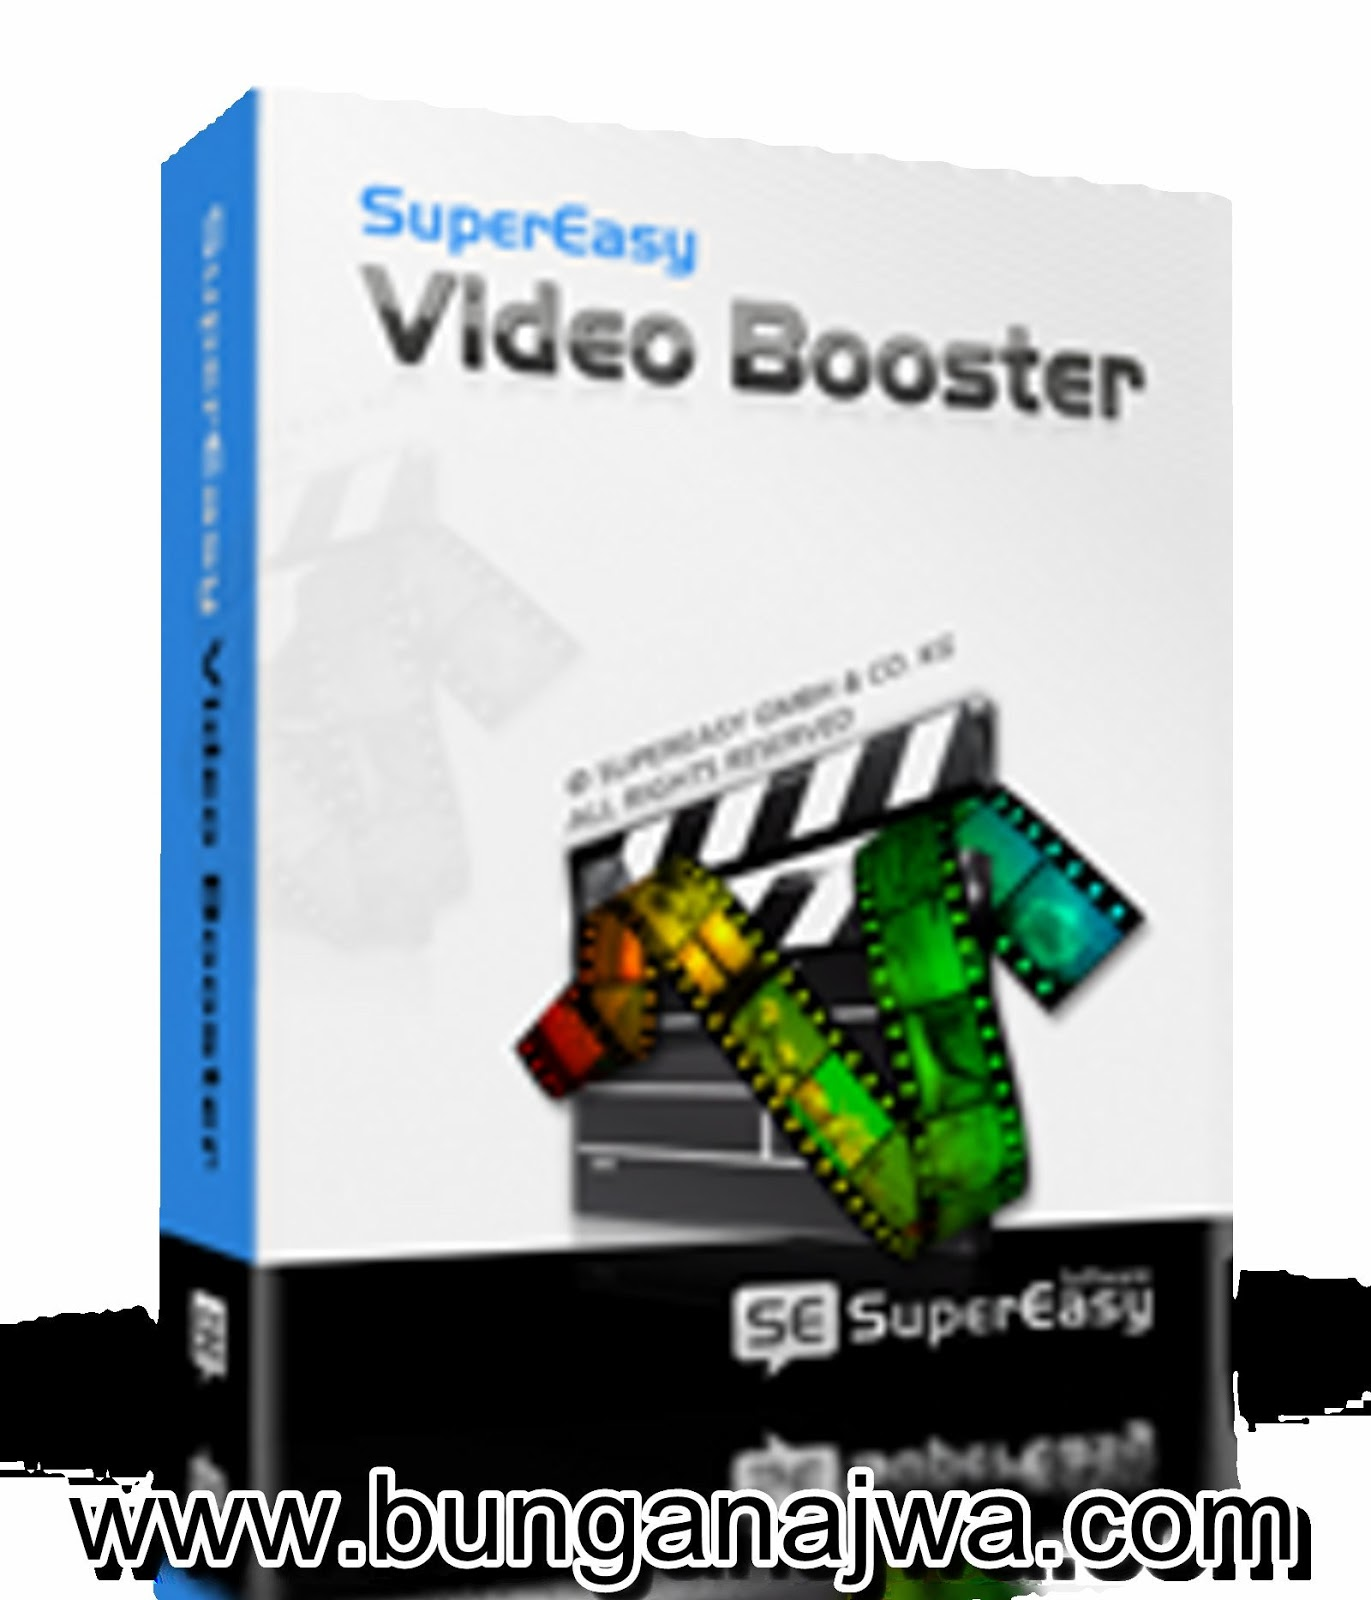 SuperEasy Video Booster 1.1.2152.(7873) Full Activation | 24 Mb